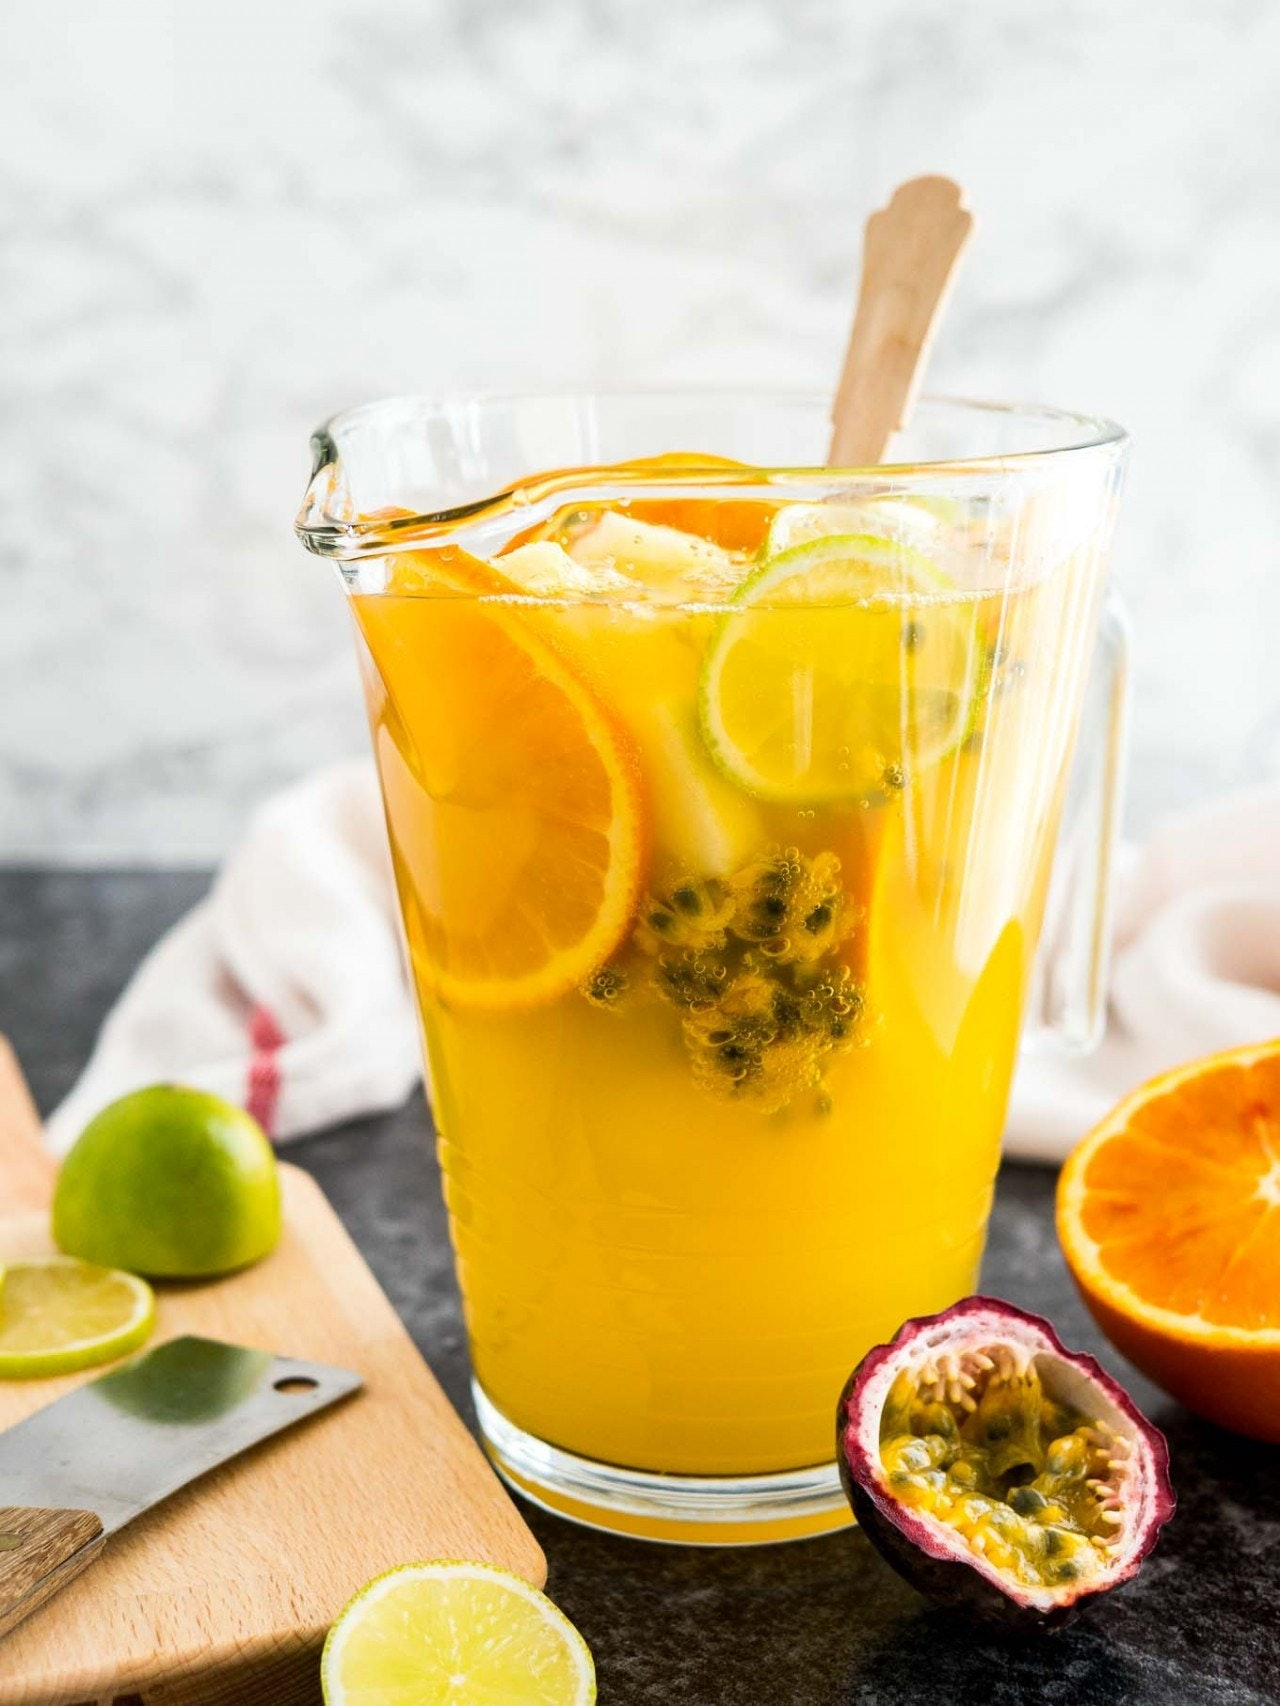 Tropical White Wine Sangria Plated Cravings 1 640X853@2X